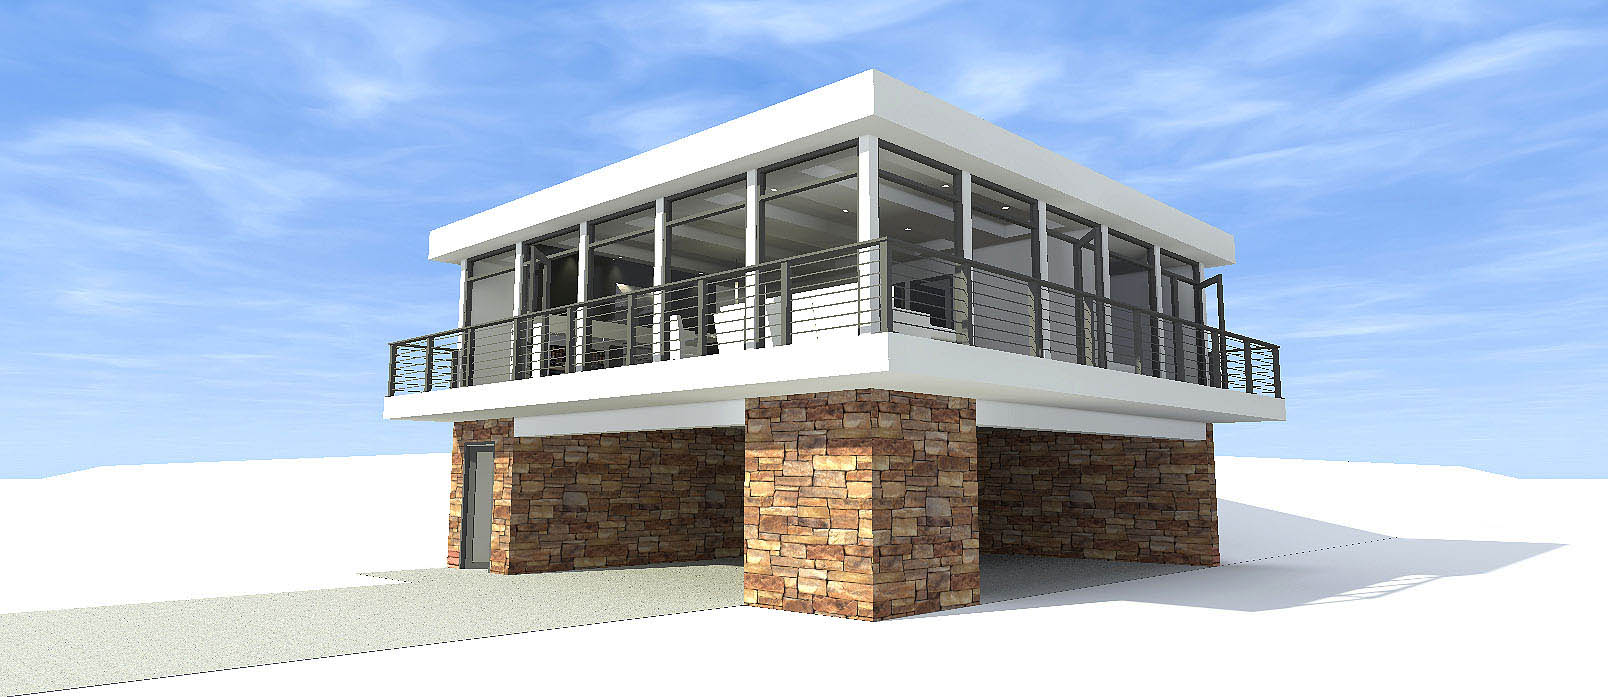 Concrete block icf design modern house plans home for Modern concrete house plans